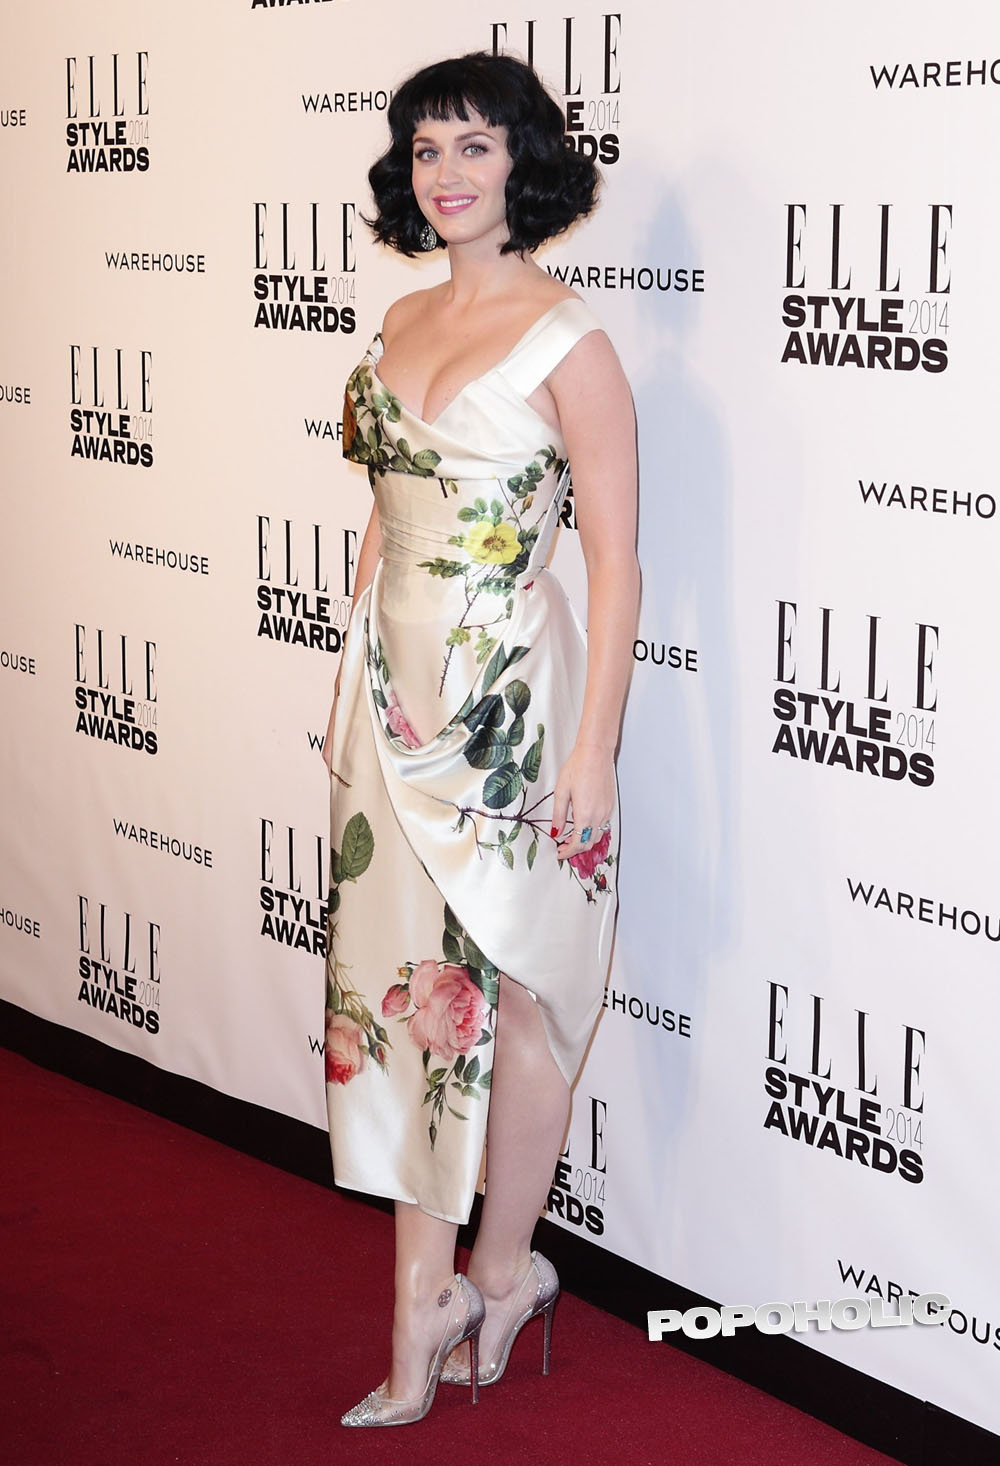 Featured image for Katy Perry at the Elle Style Awards cleavage